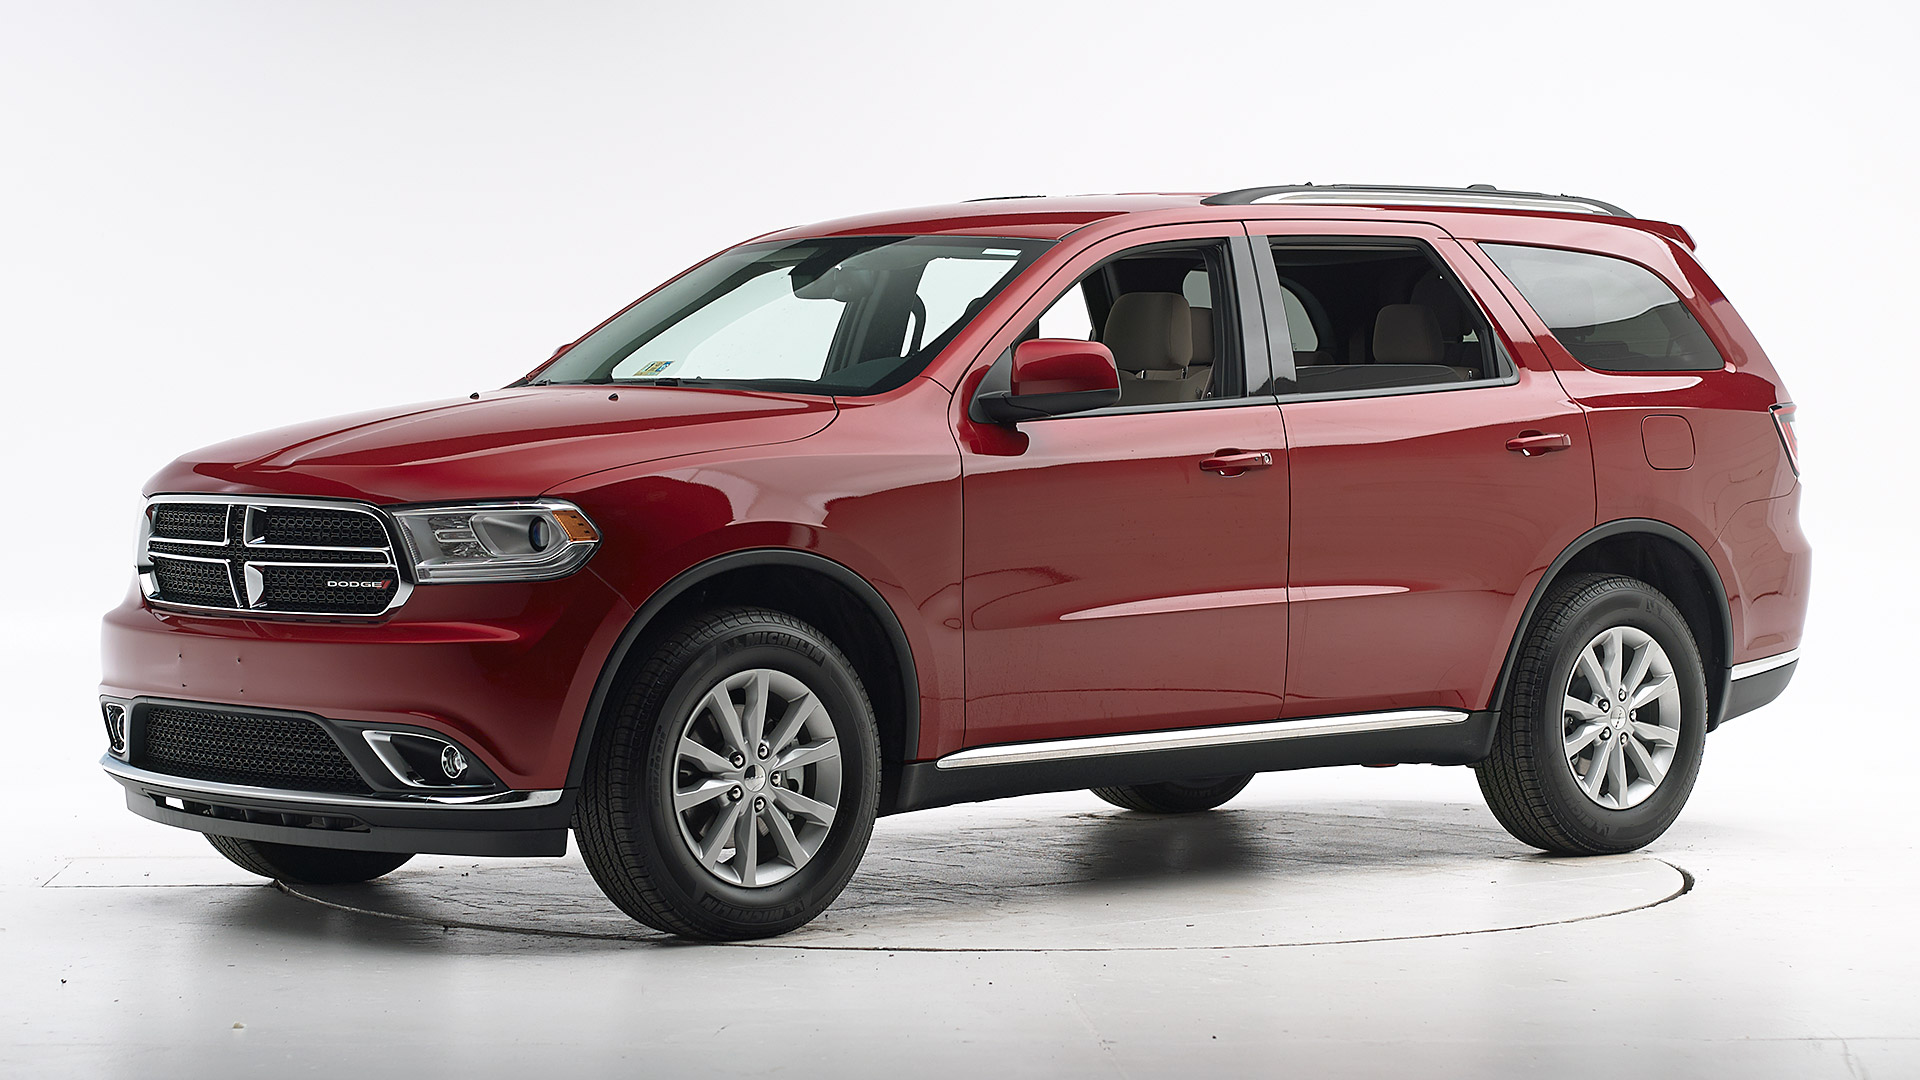 2018 Dodge Durango 4-door SUV